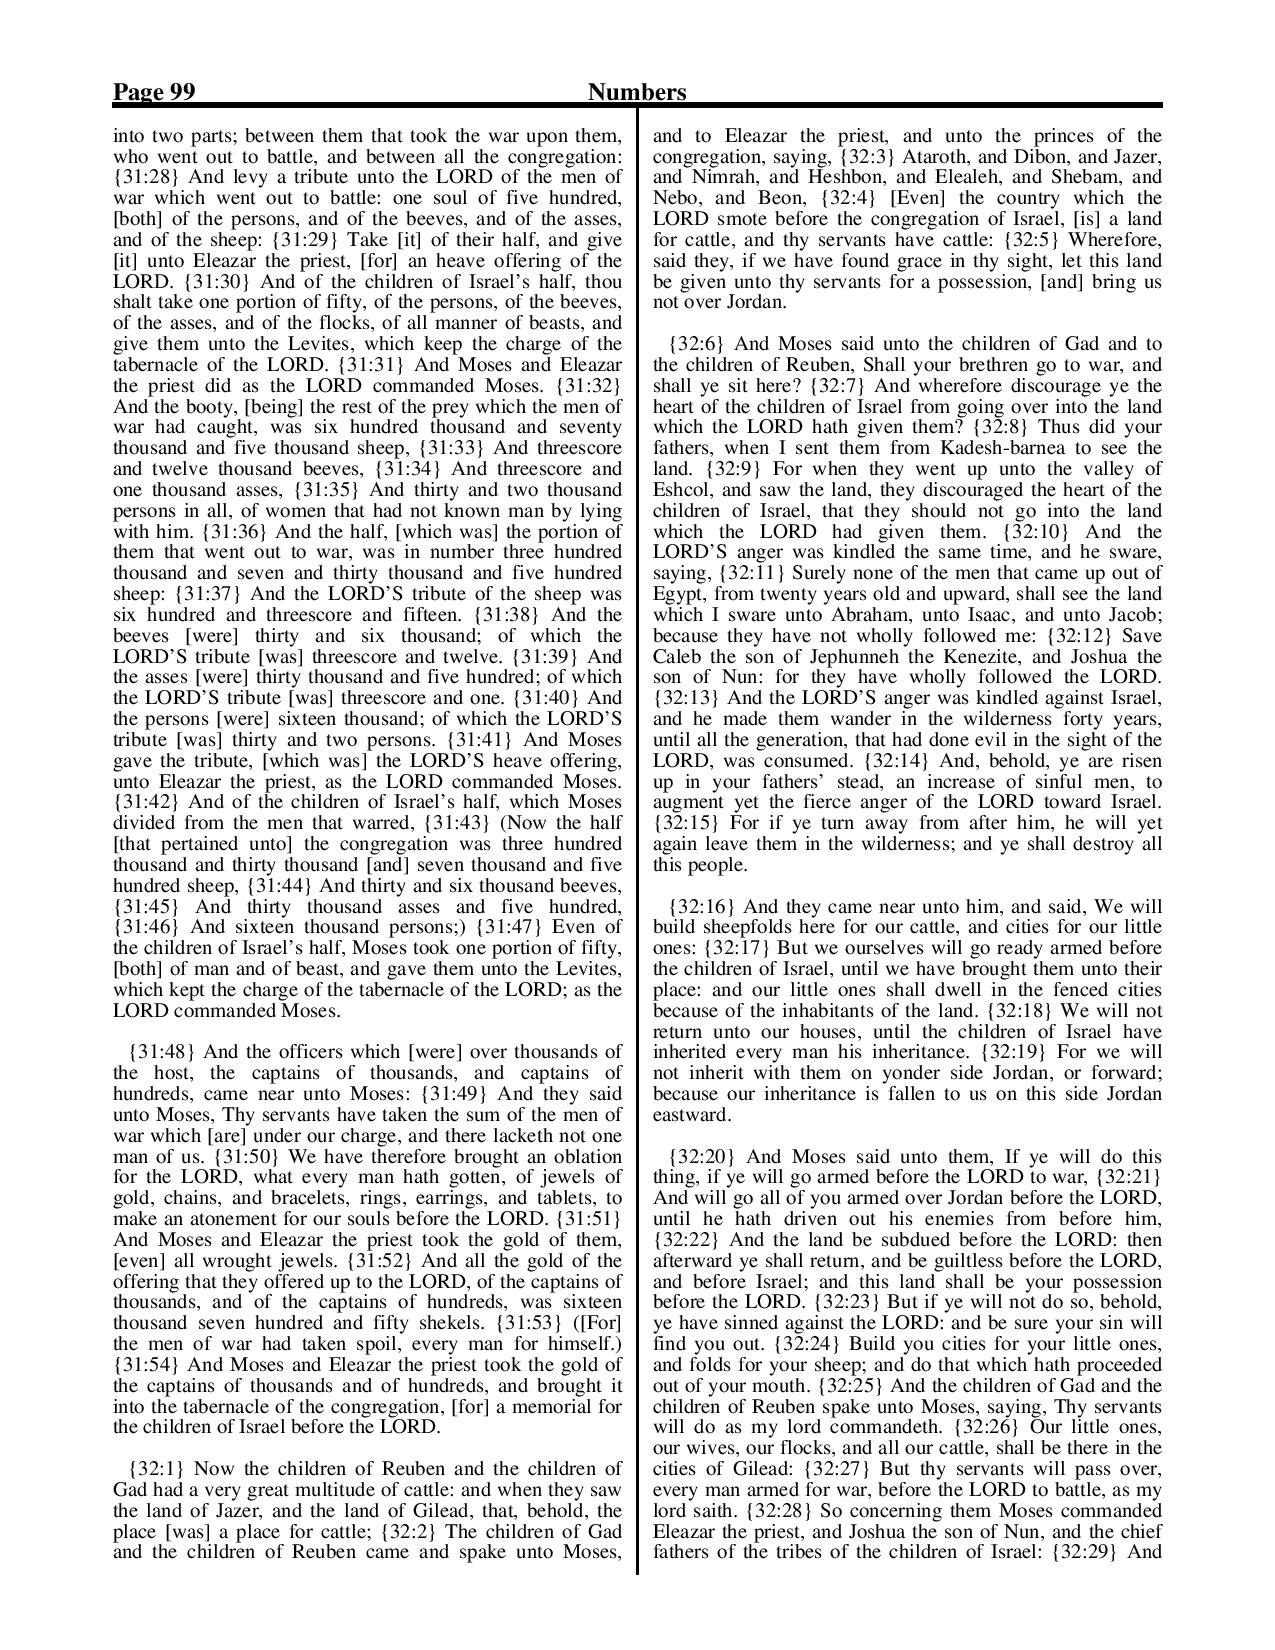 King-James-Bible-KJV-Bible-PDF-page-120